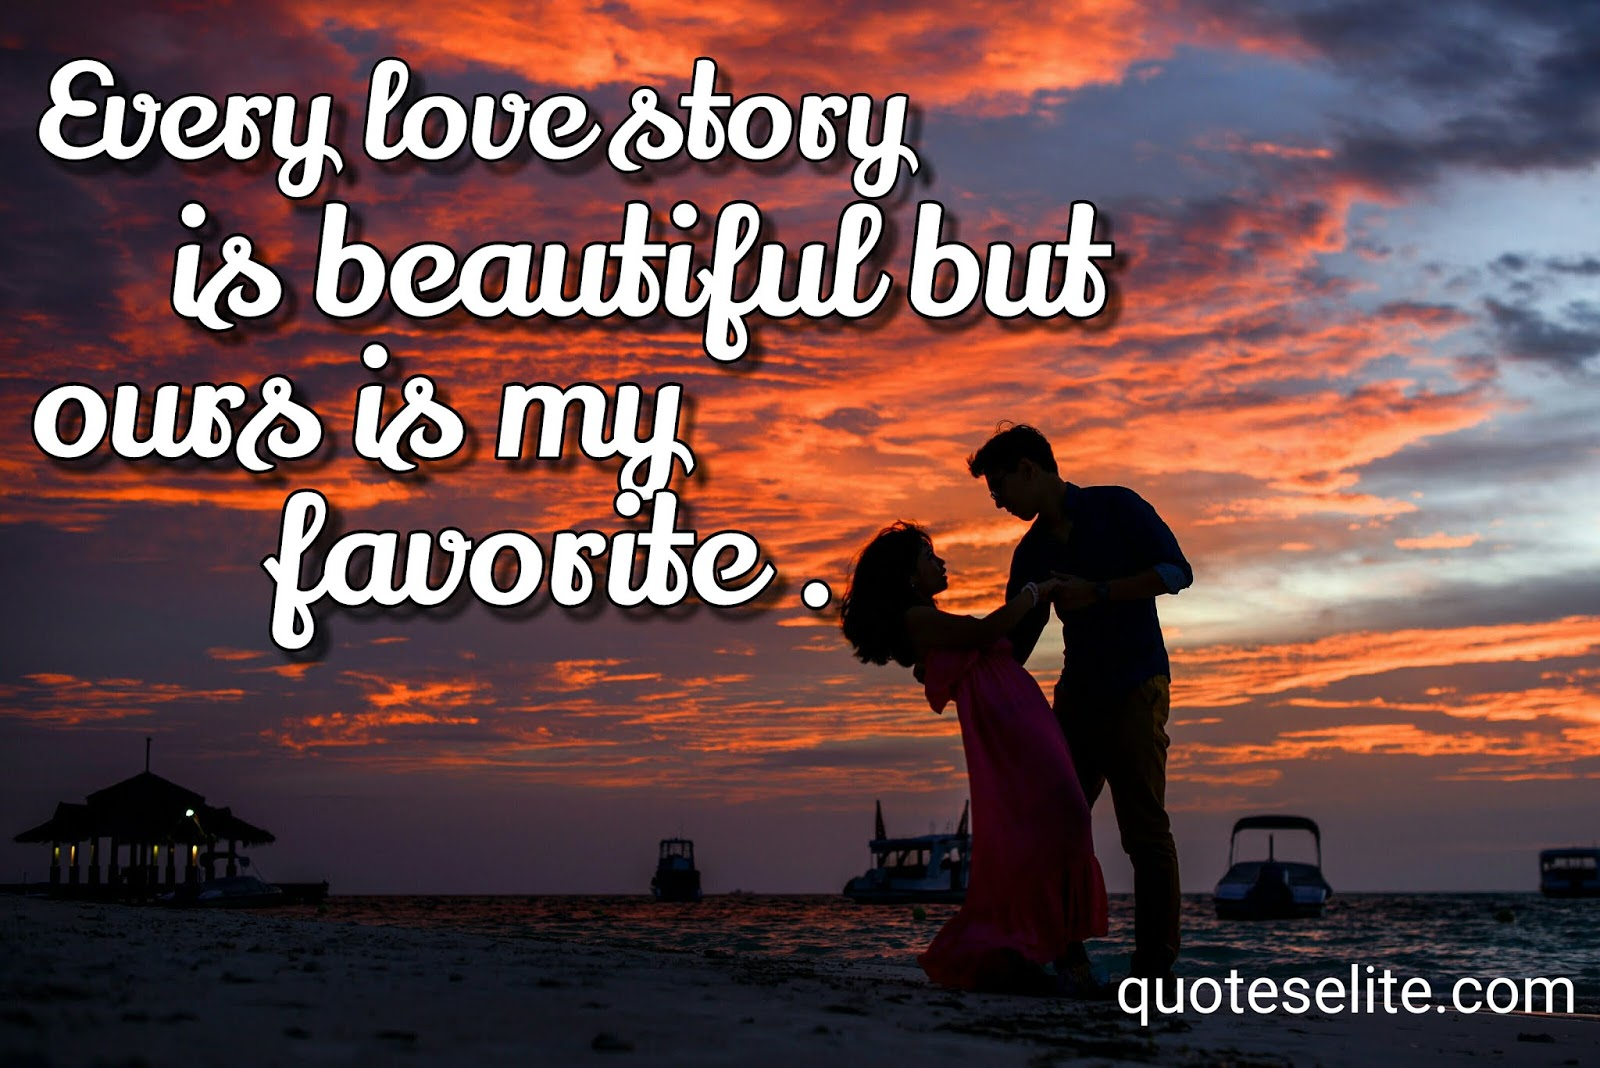 Our Love Story Is My Favorite Image Quotes